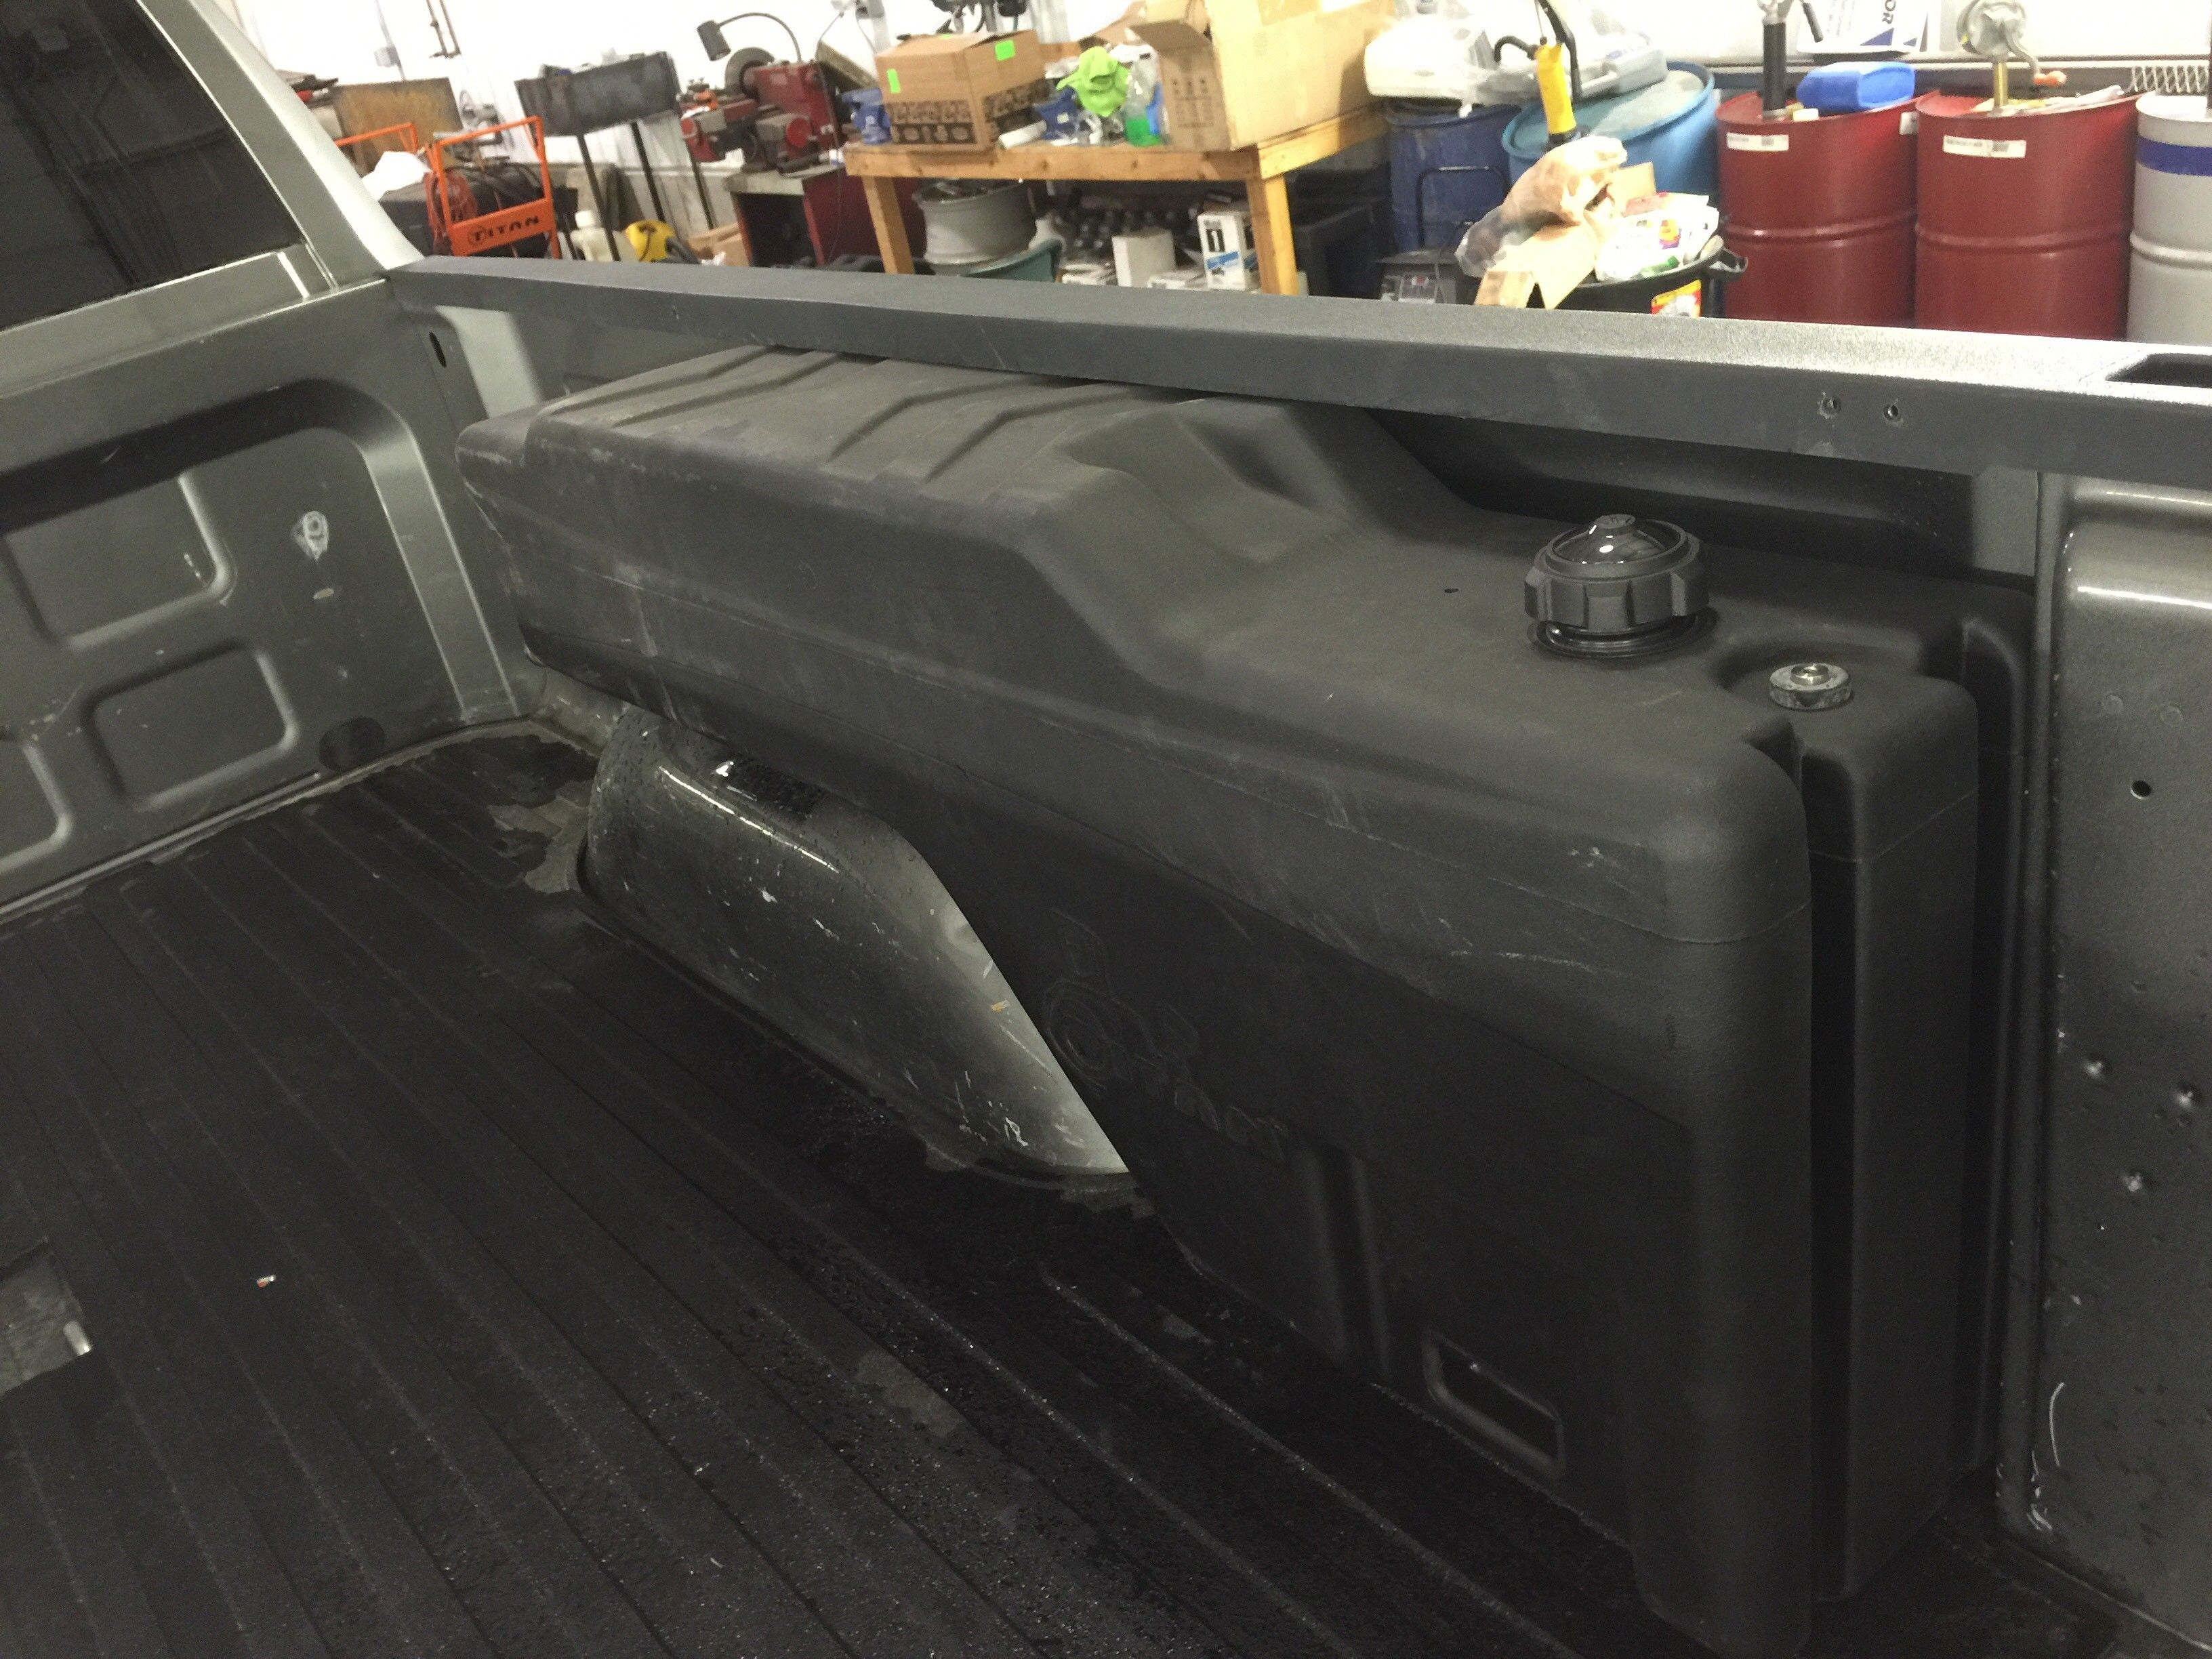 Truck Auxiliary Fuel Tank Google Search Transfer Tanks Truck Bed Overland Truck